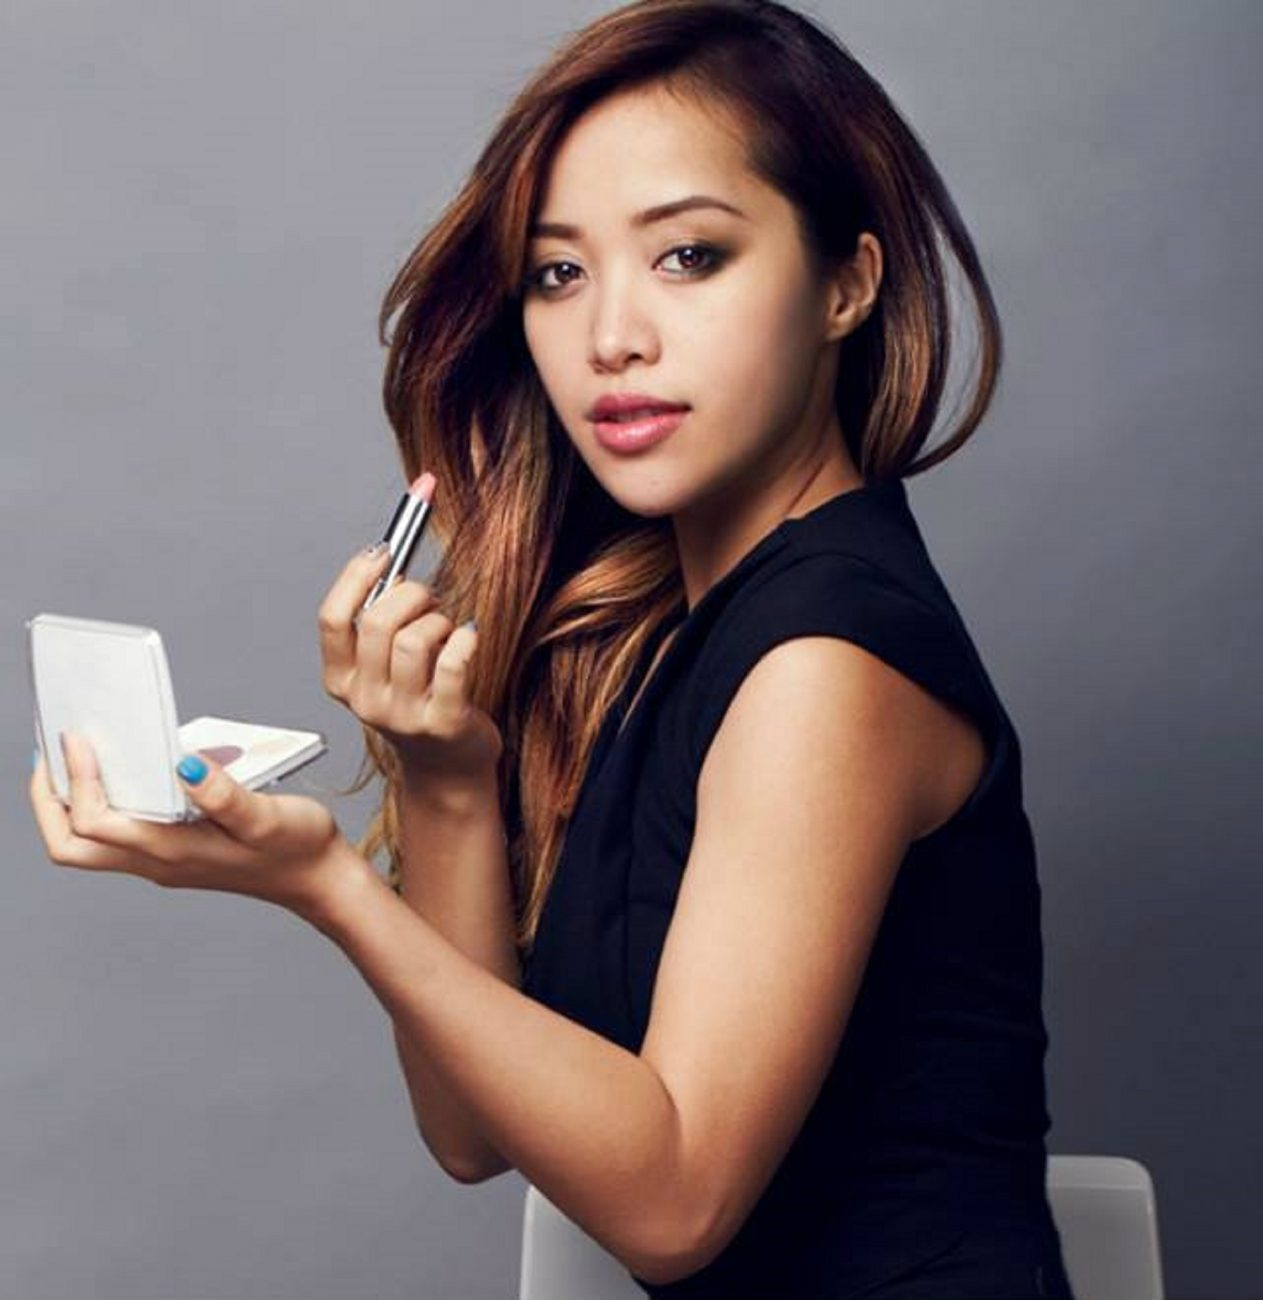 Michelle Phan and Ipsy are Hiring Work from Home in California, New York, North Carolina and Texas